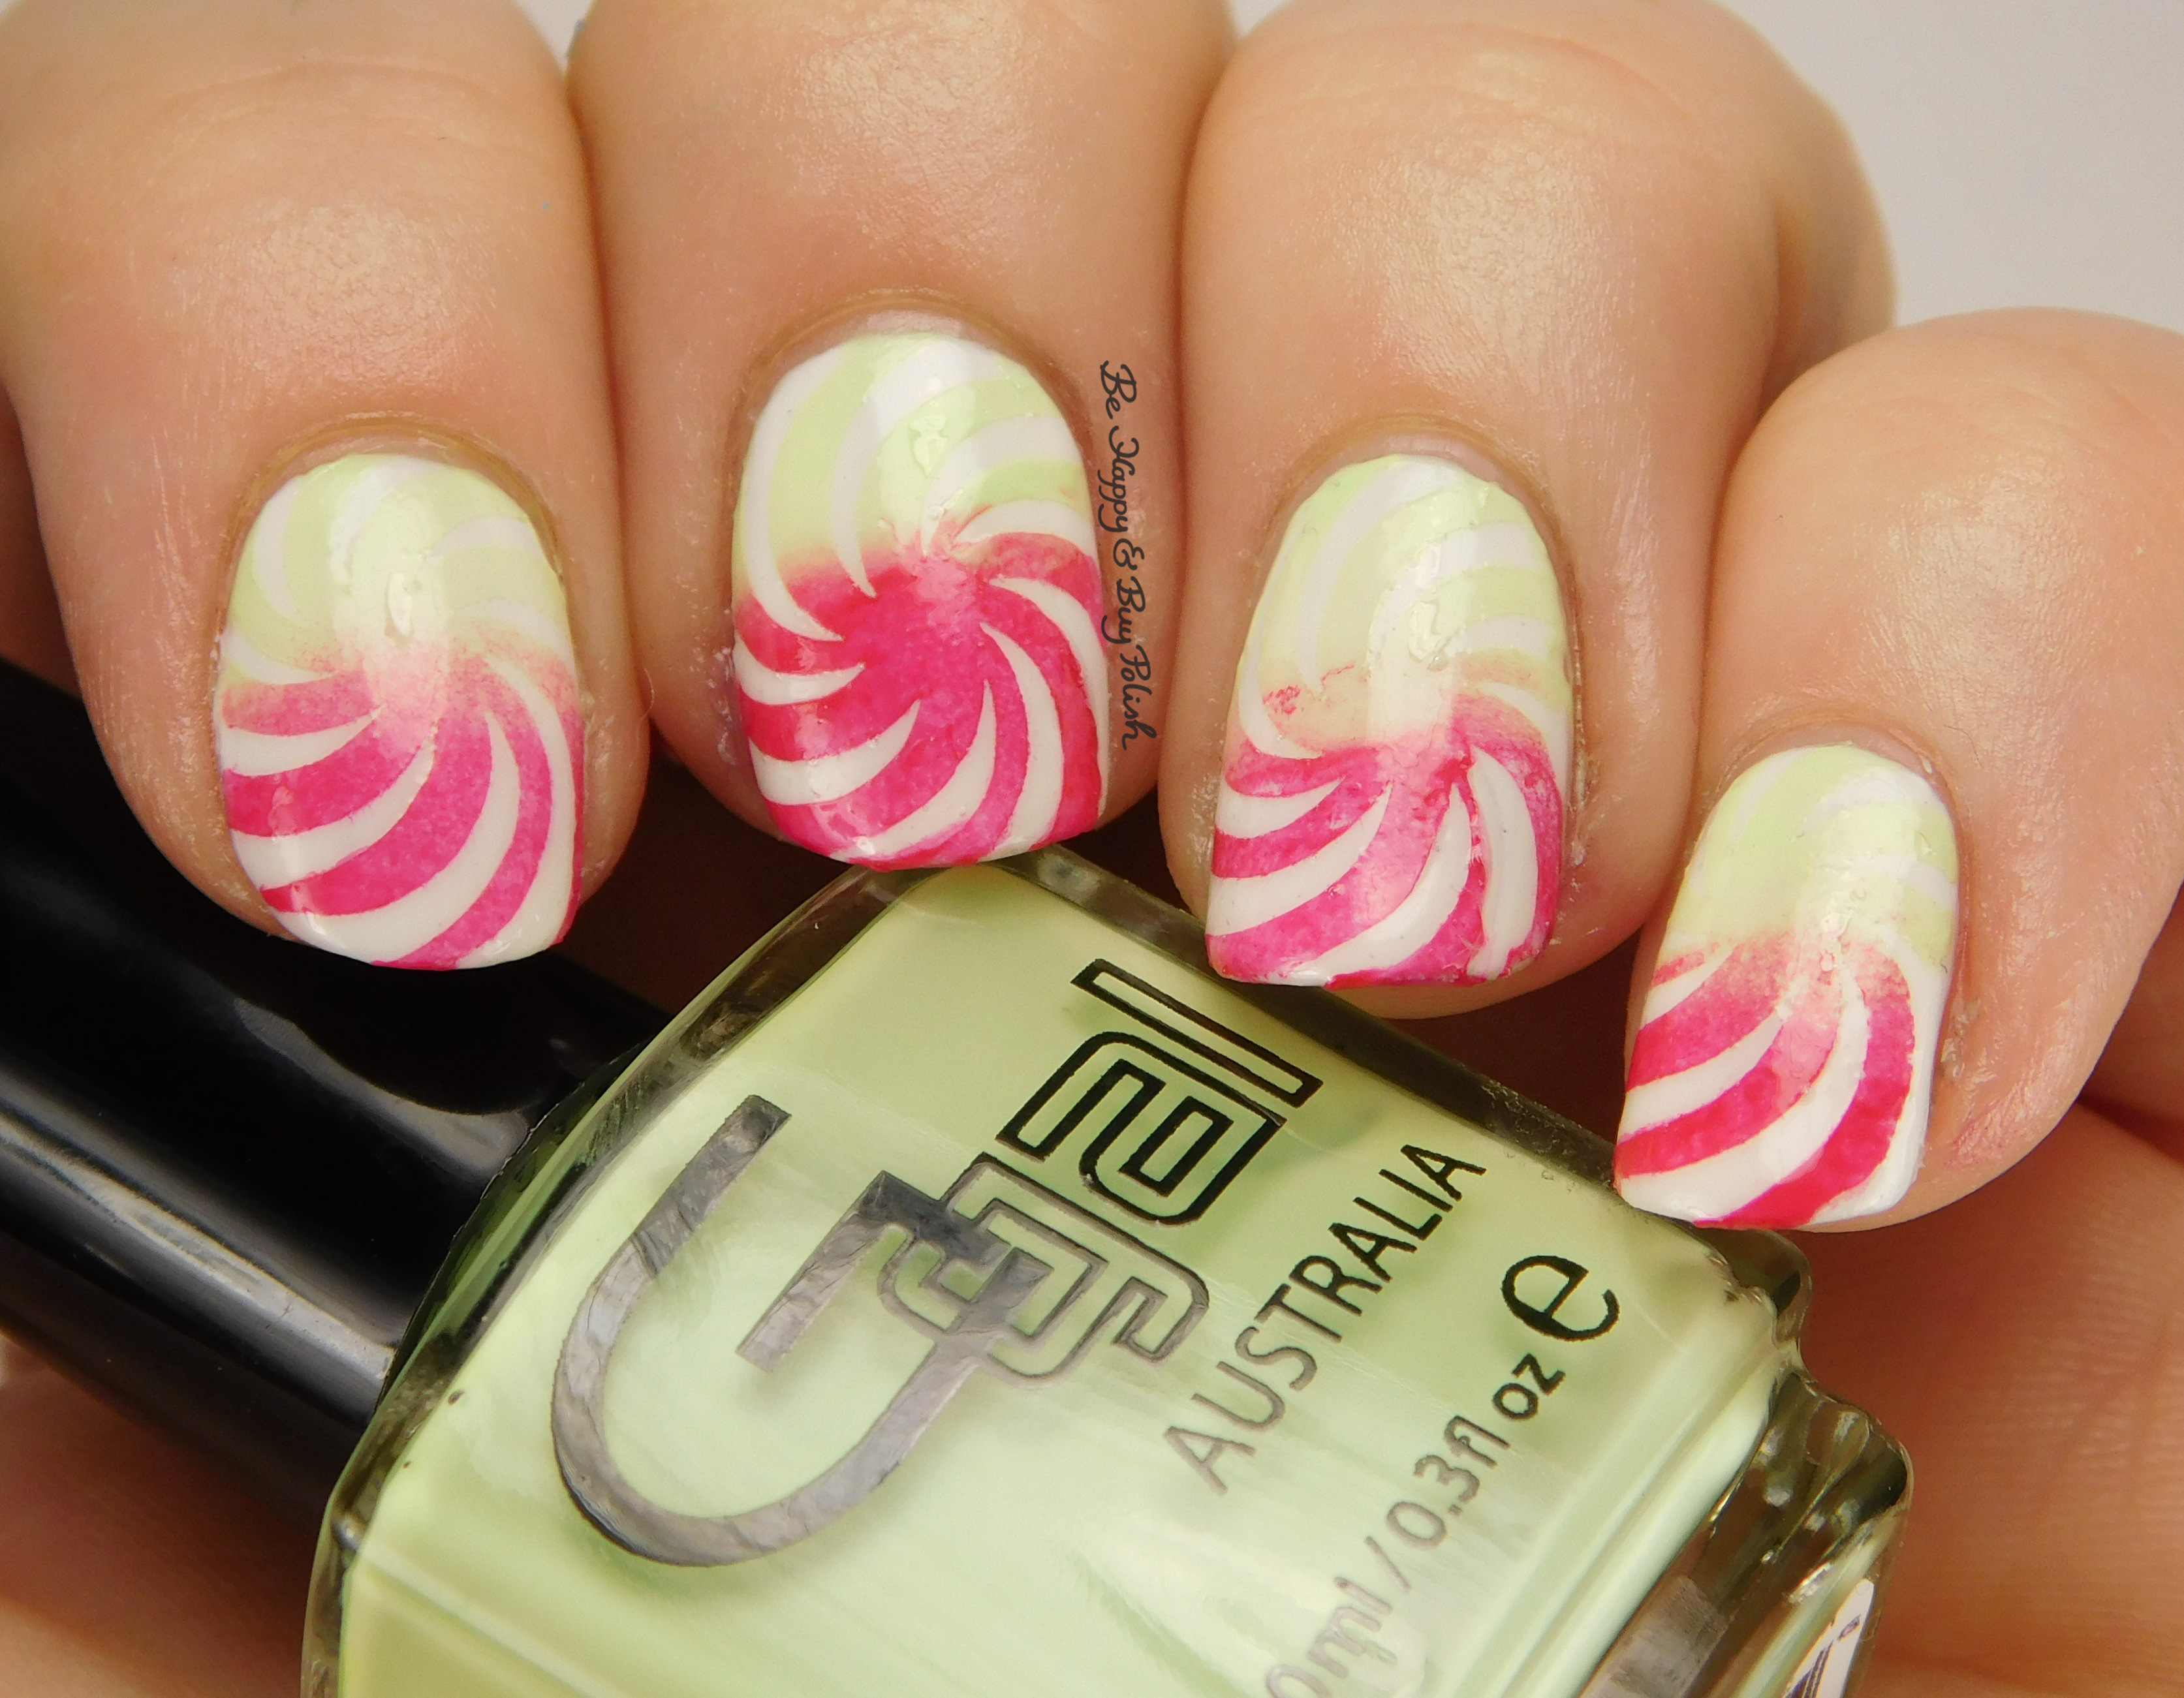 12 Days Of Christmas Nail Art Challenge Candy Cane Be Happy And